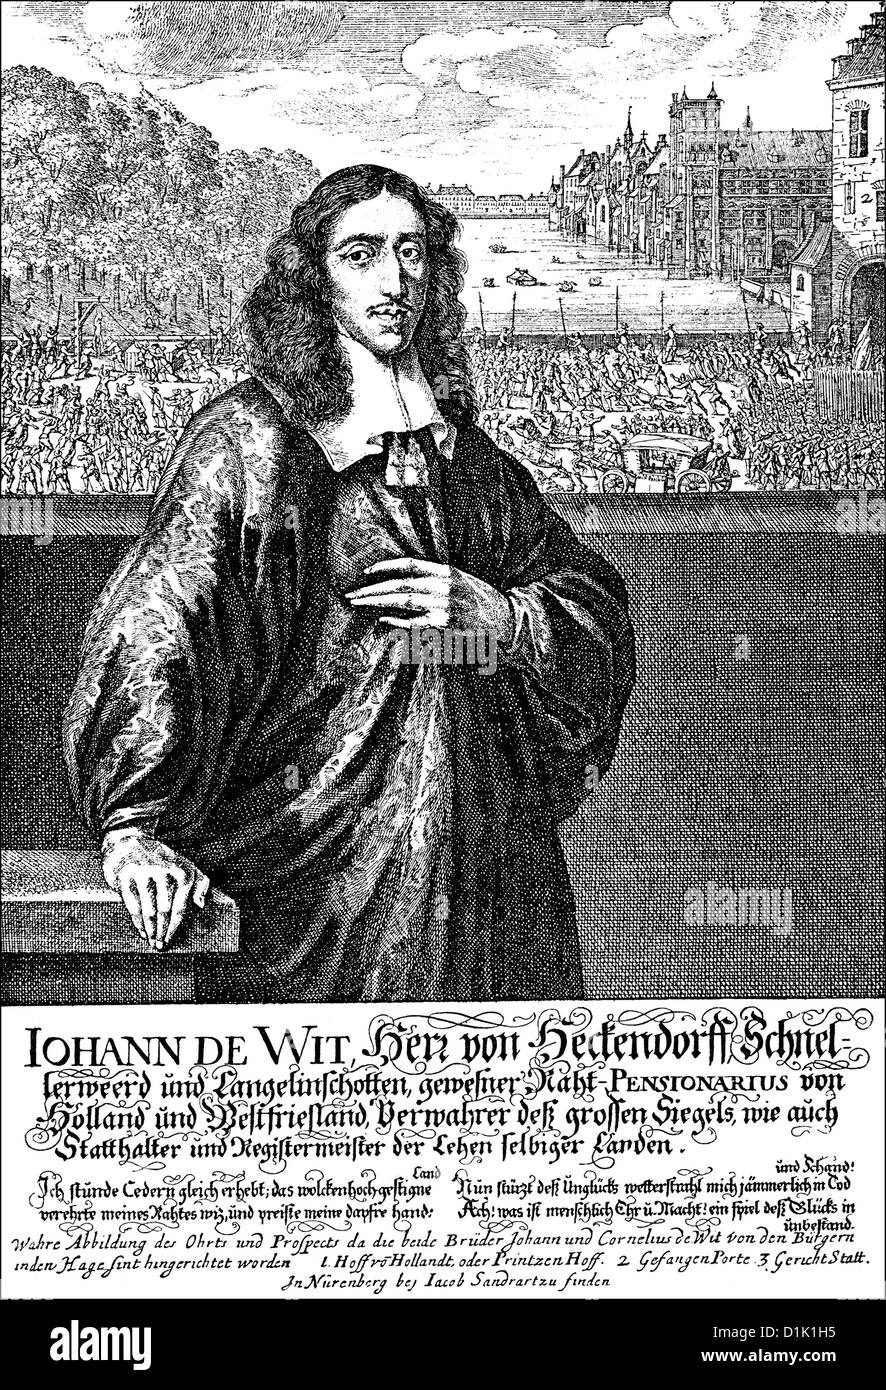 Johan de Witt or Jan de Wit, 1625 - 1672, Grand Pensionary of Holland, the most important Dutch statesman in the - Stock Image